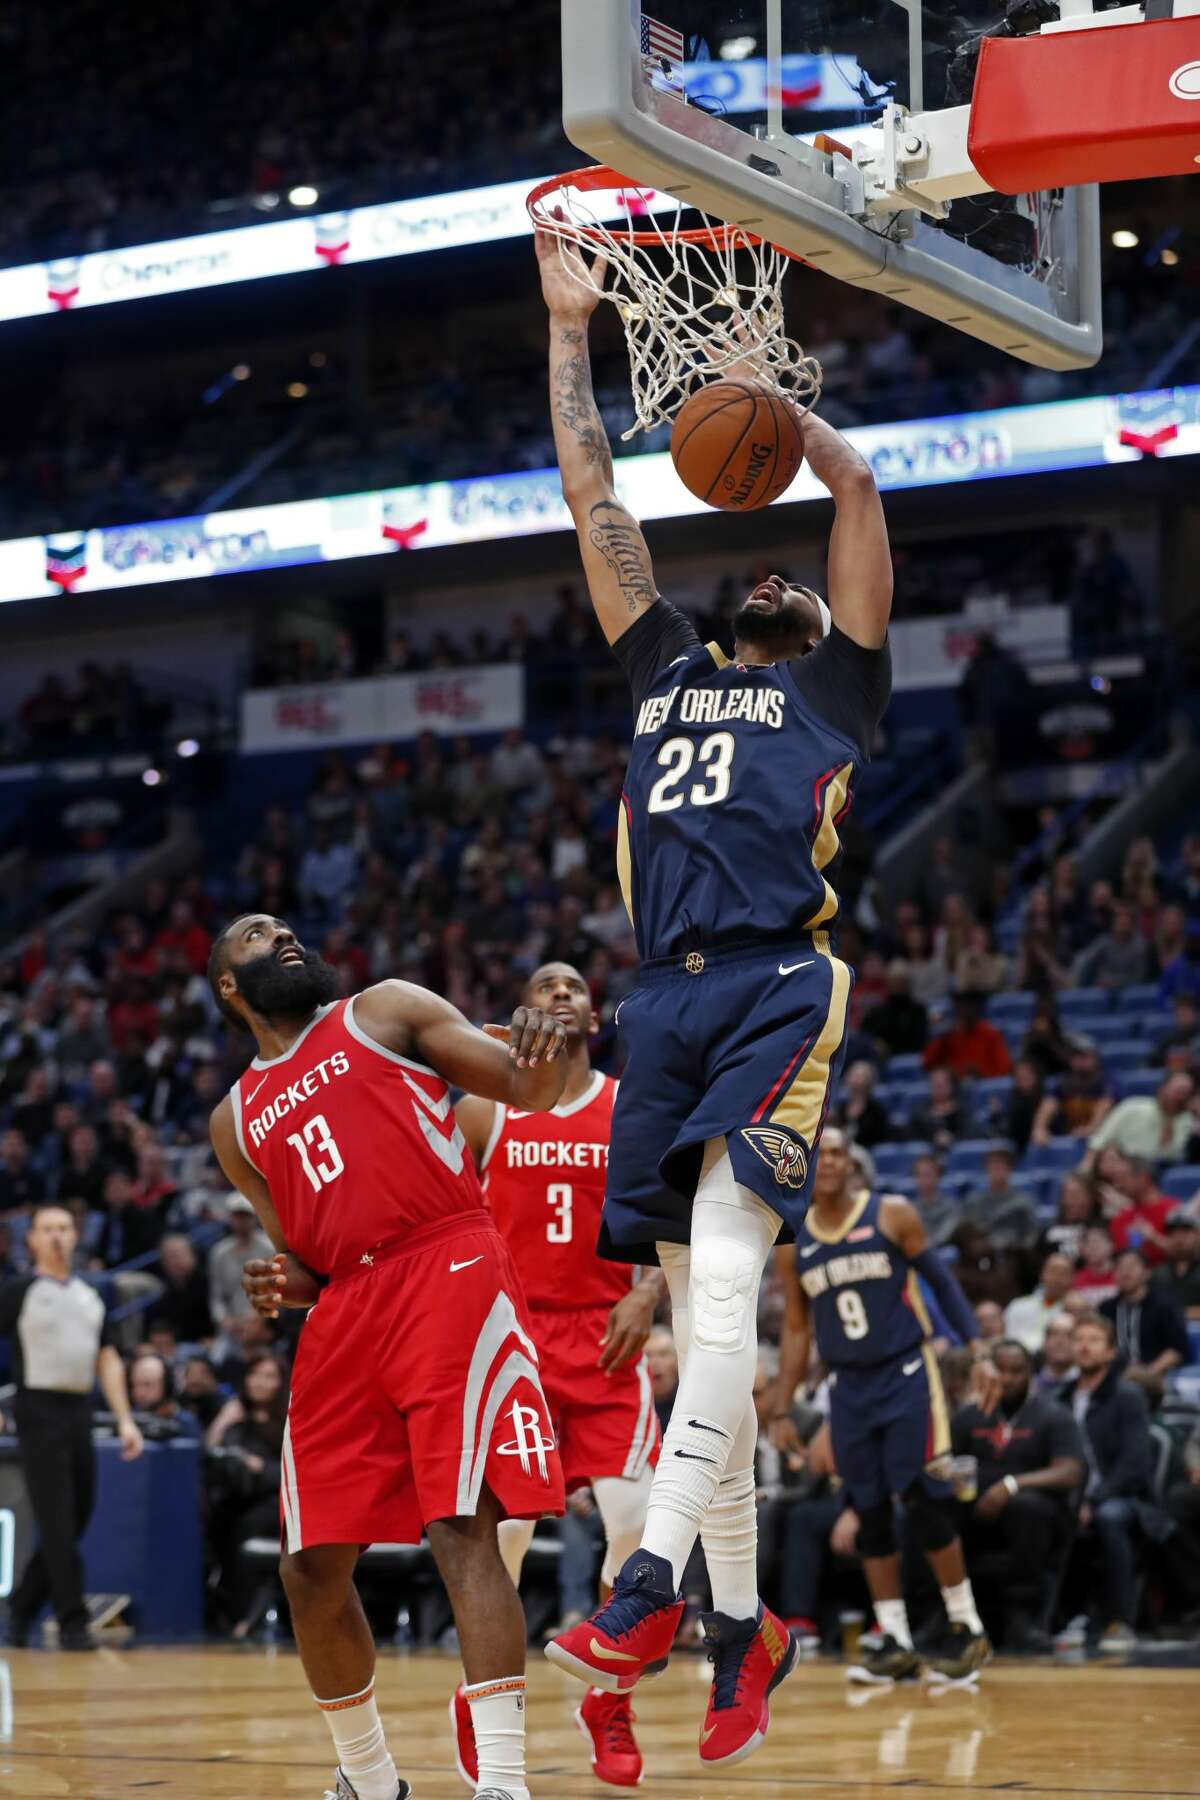 New Orleans Pelicans forward Anthony Davis (23) slam dunks over Houston Rockets guard James Harden (13) and guard Chris Paul (3) in the second half of an NBA basketball game in New Orleans, Friday, Jan. 26, 2018. The Pelicans won 115-113. (AP Photo/Gerald Herbert)